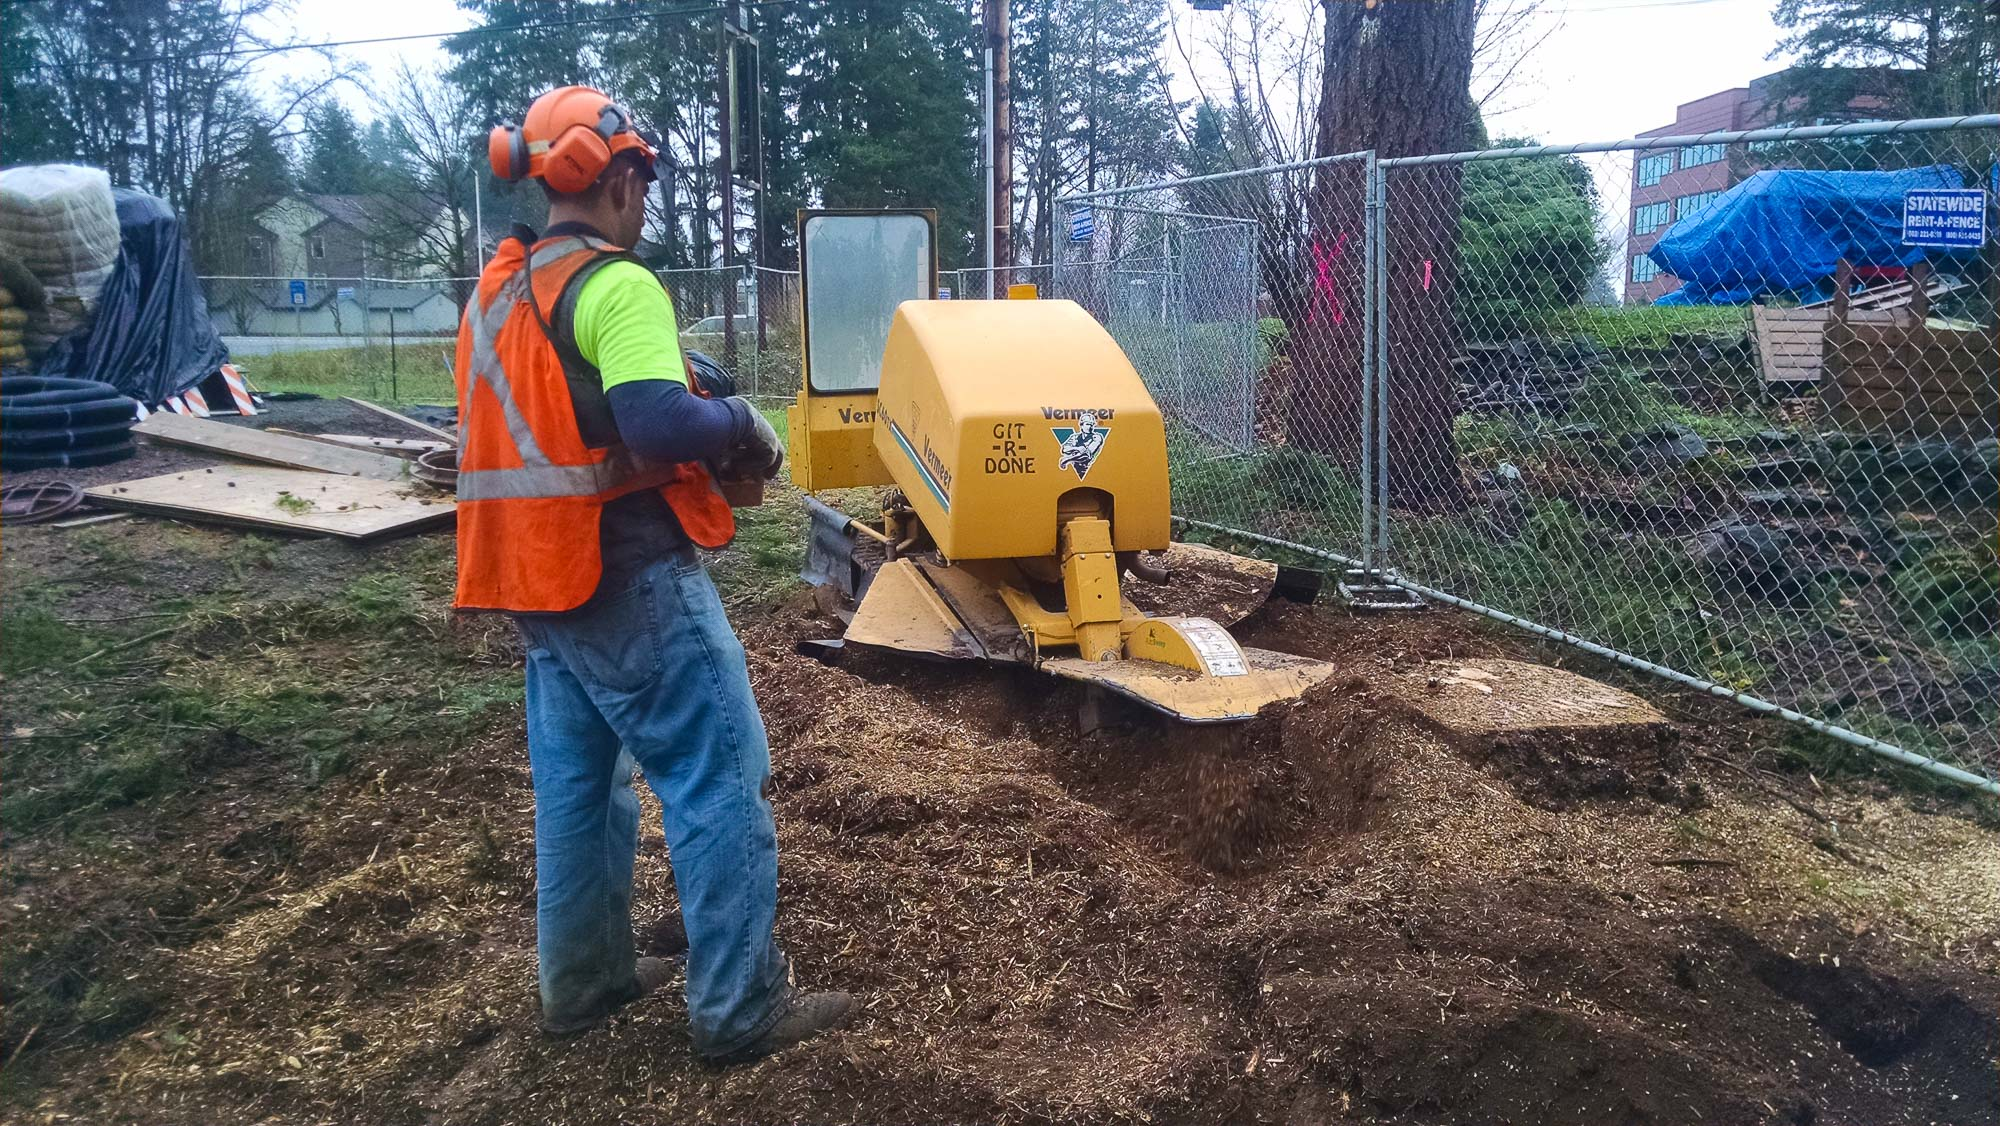 tree-service-removal-pruning-salem-oregon-592